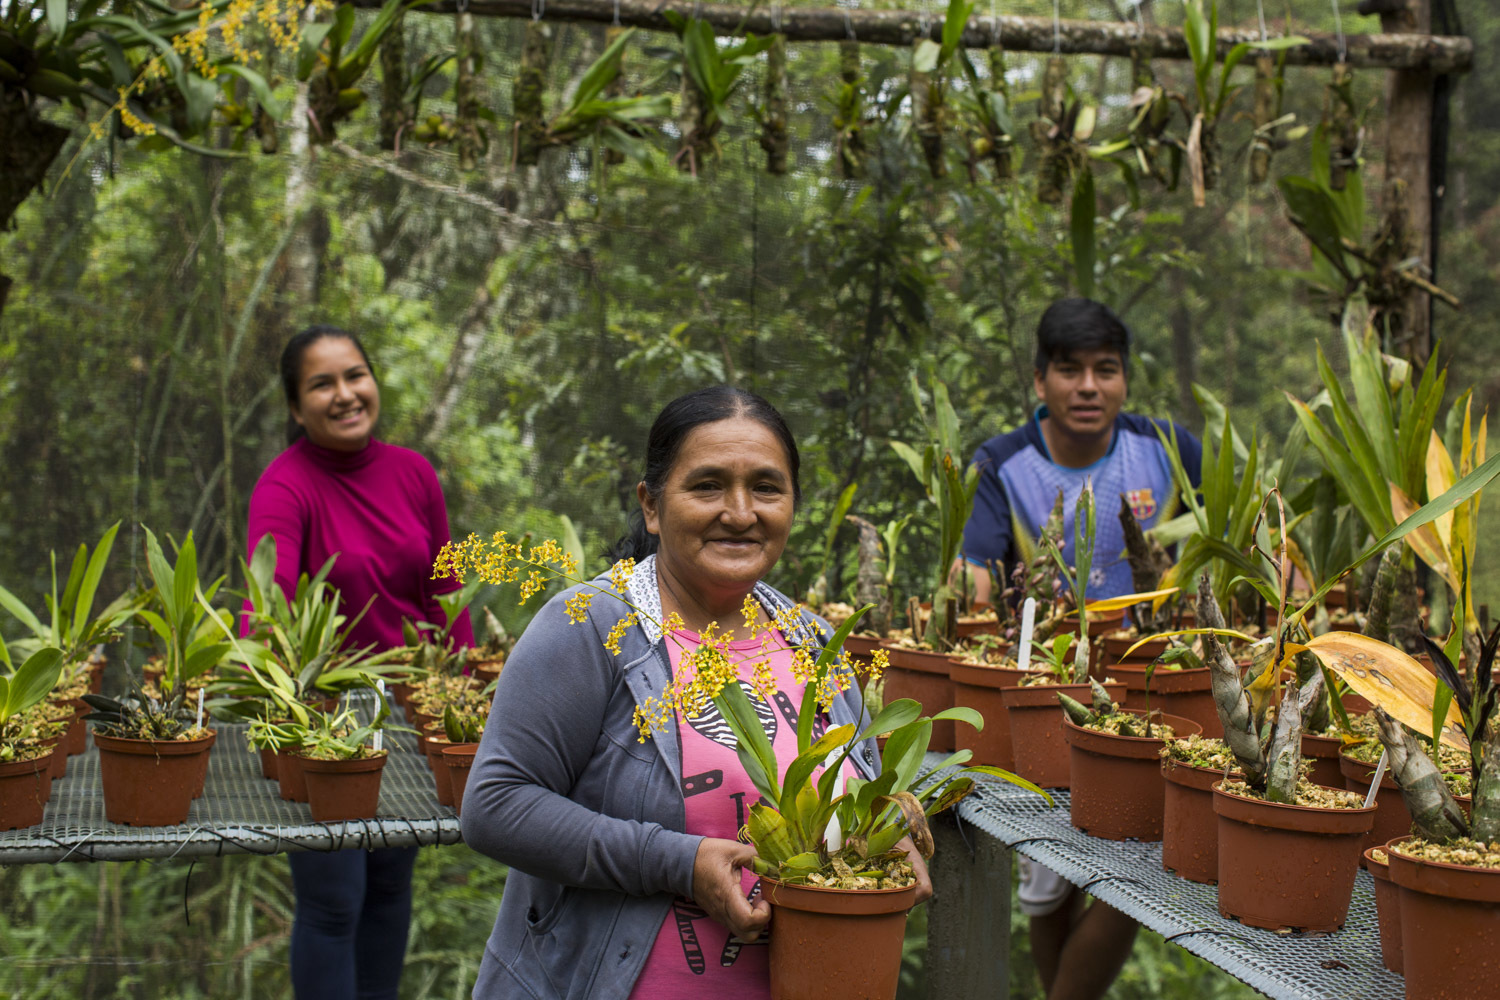 A smiling older woman holds a potted plan in her hand as two young people smile behind rows of potted plants behind her.